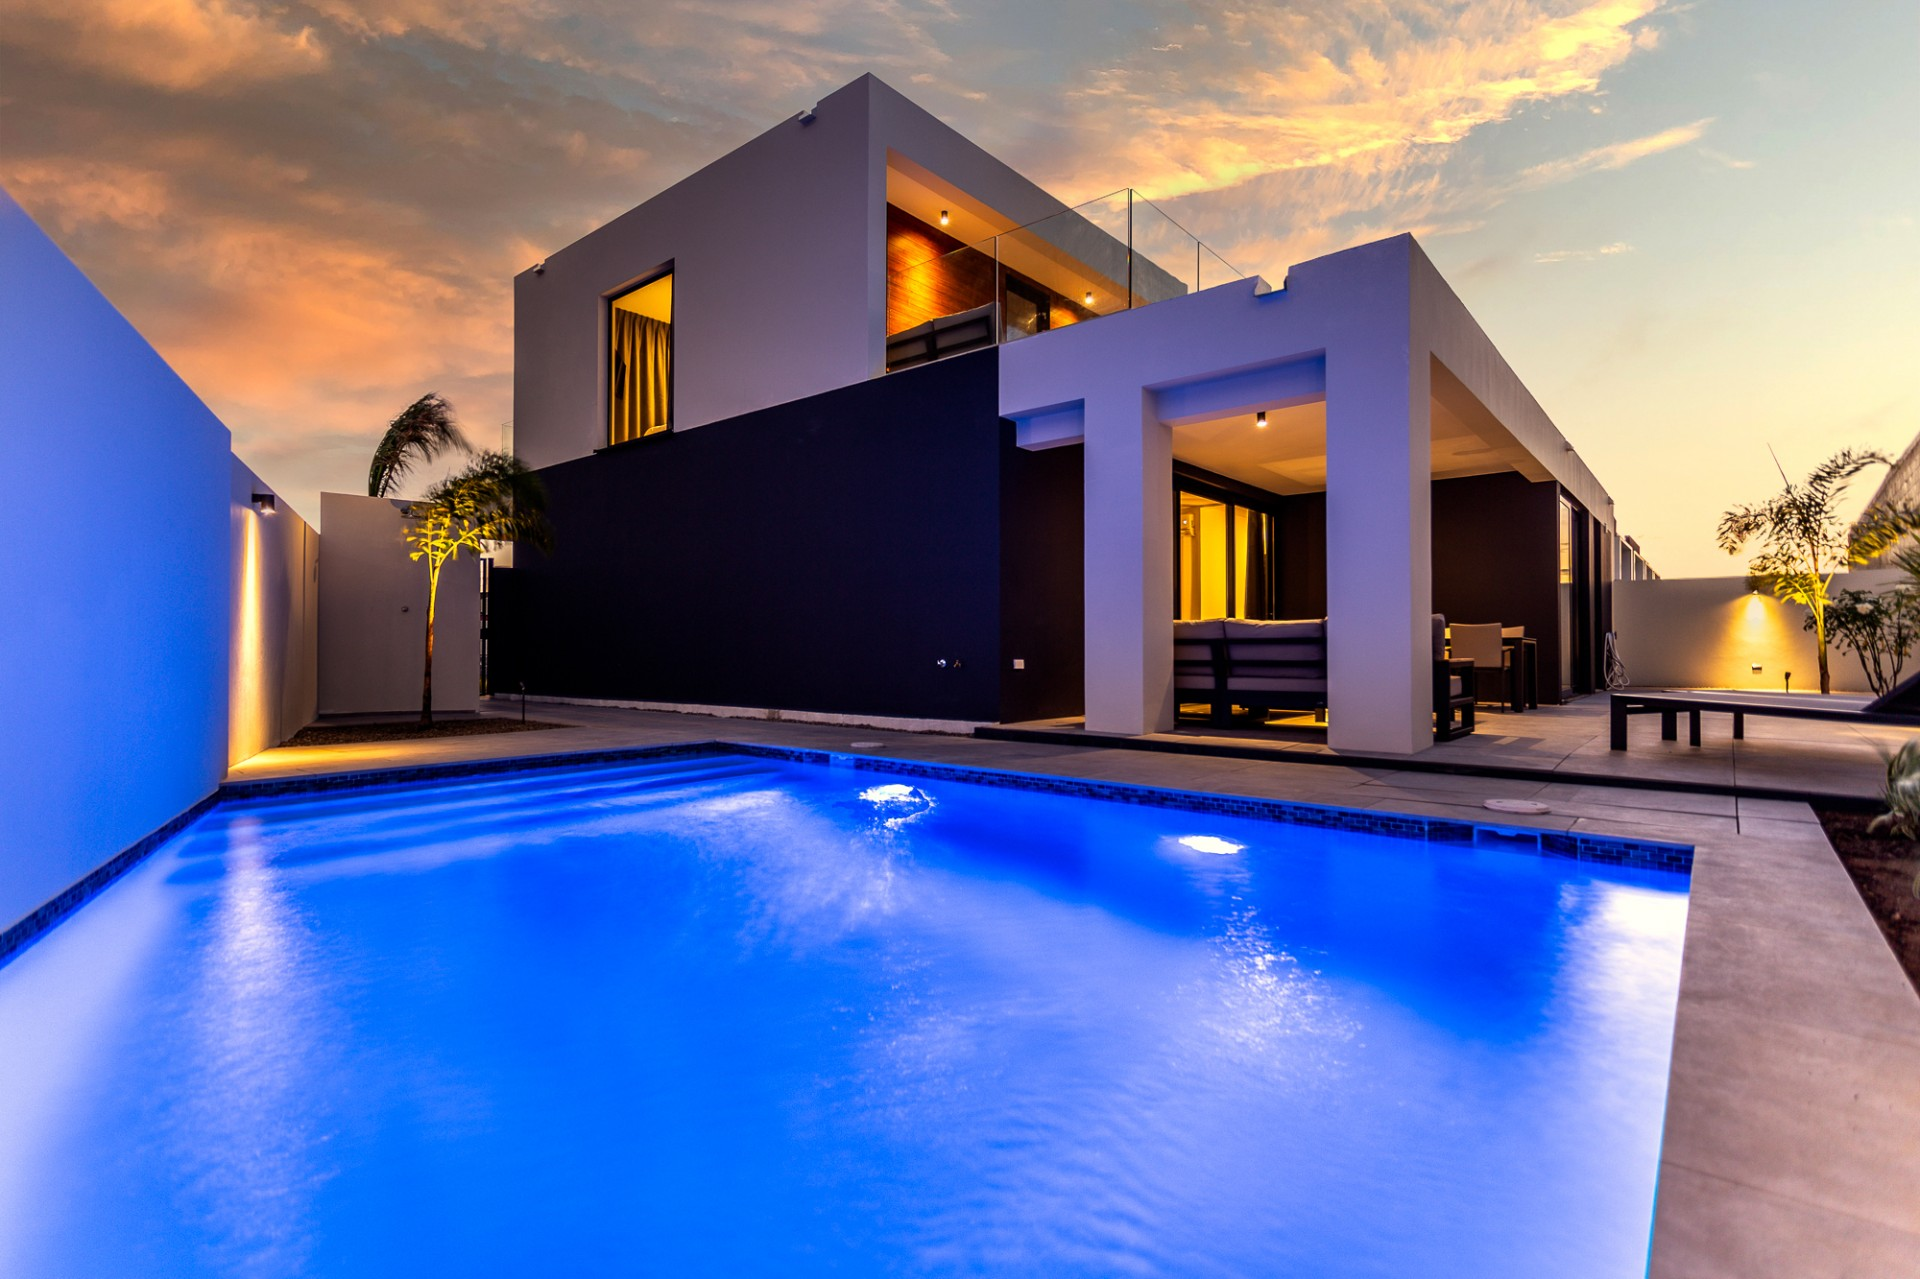 Luxury home for sale in aruba